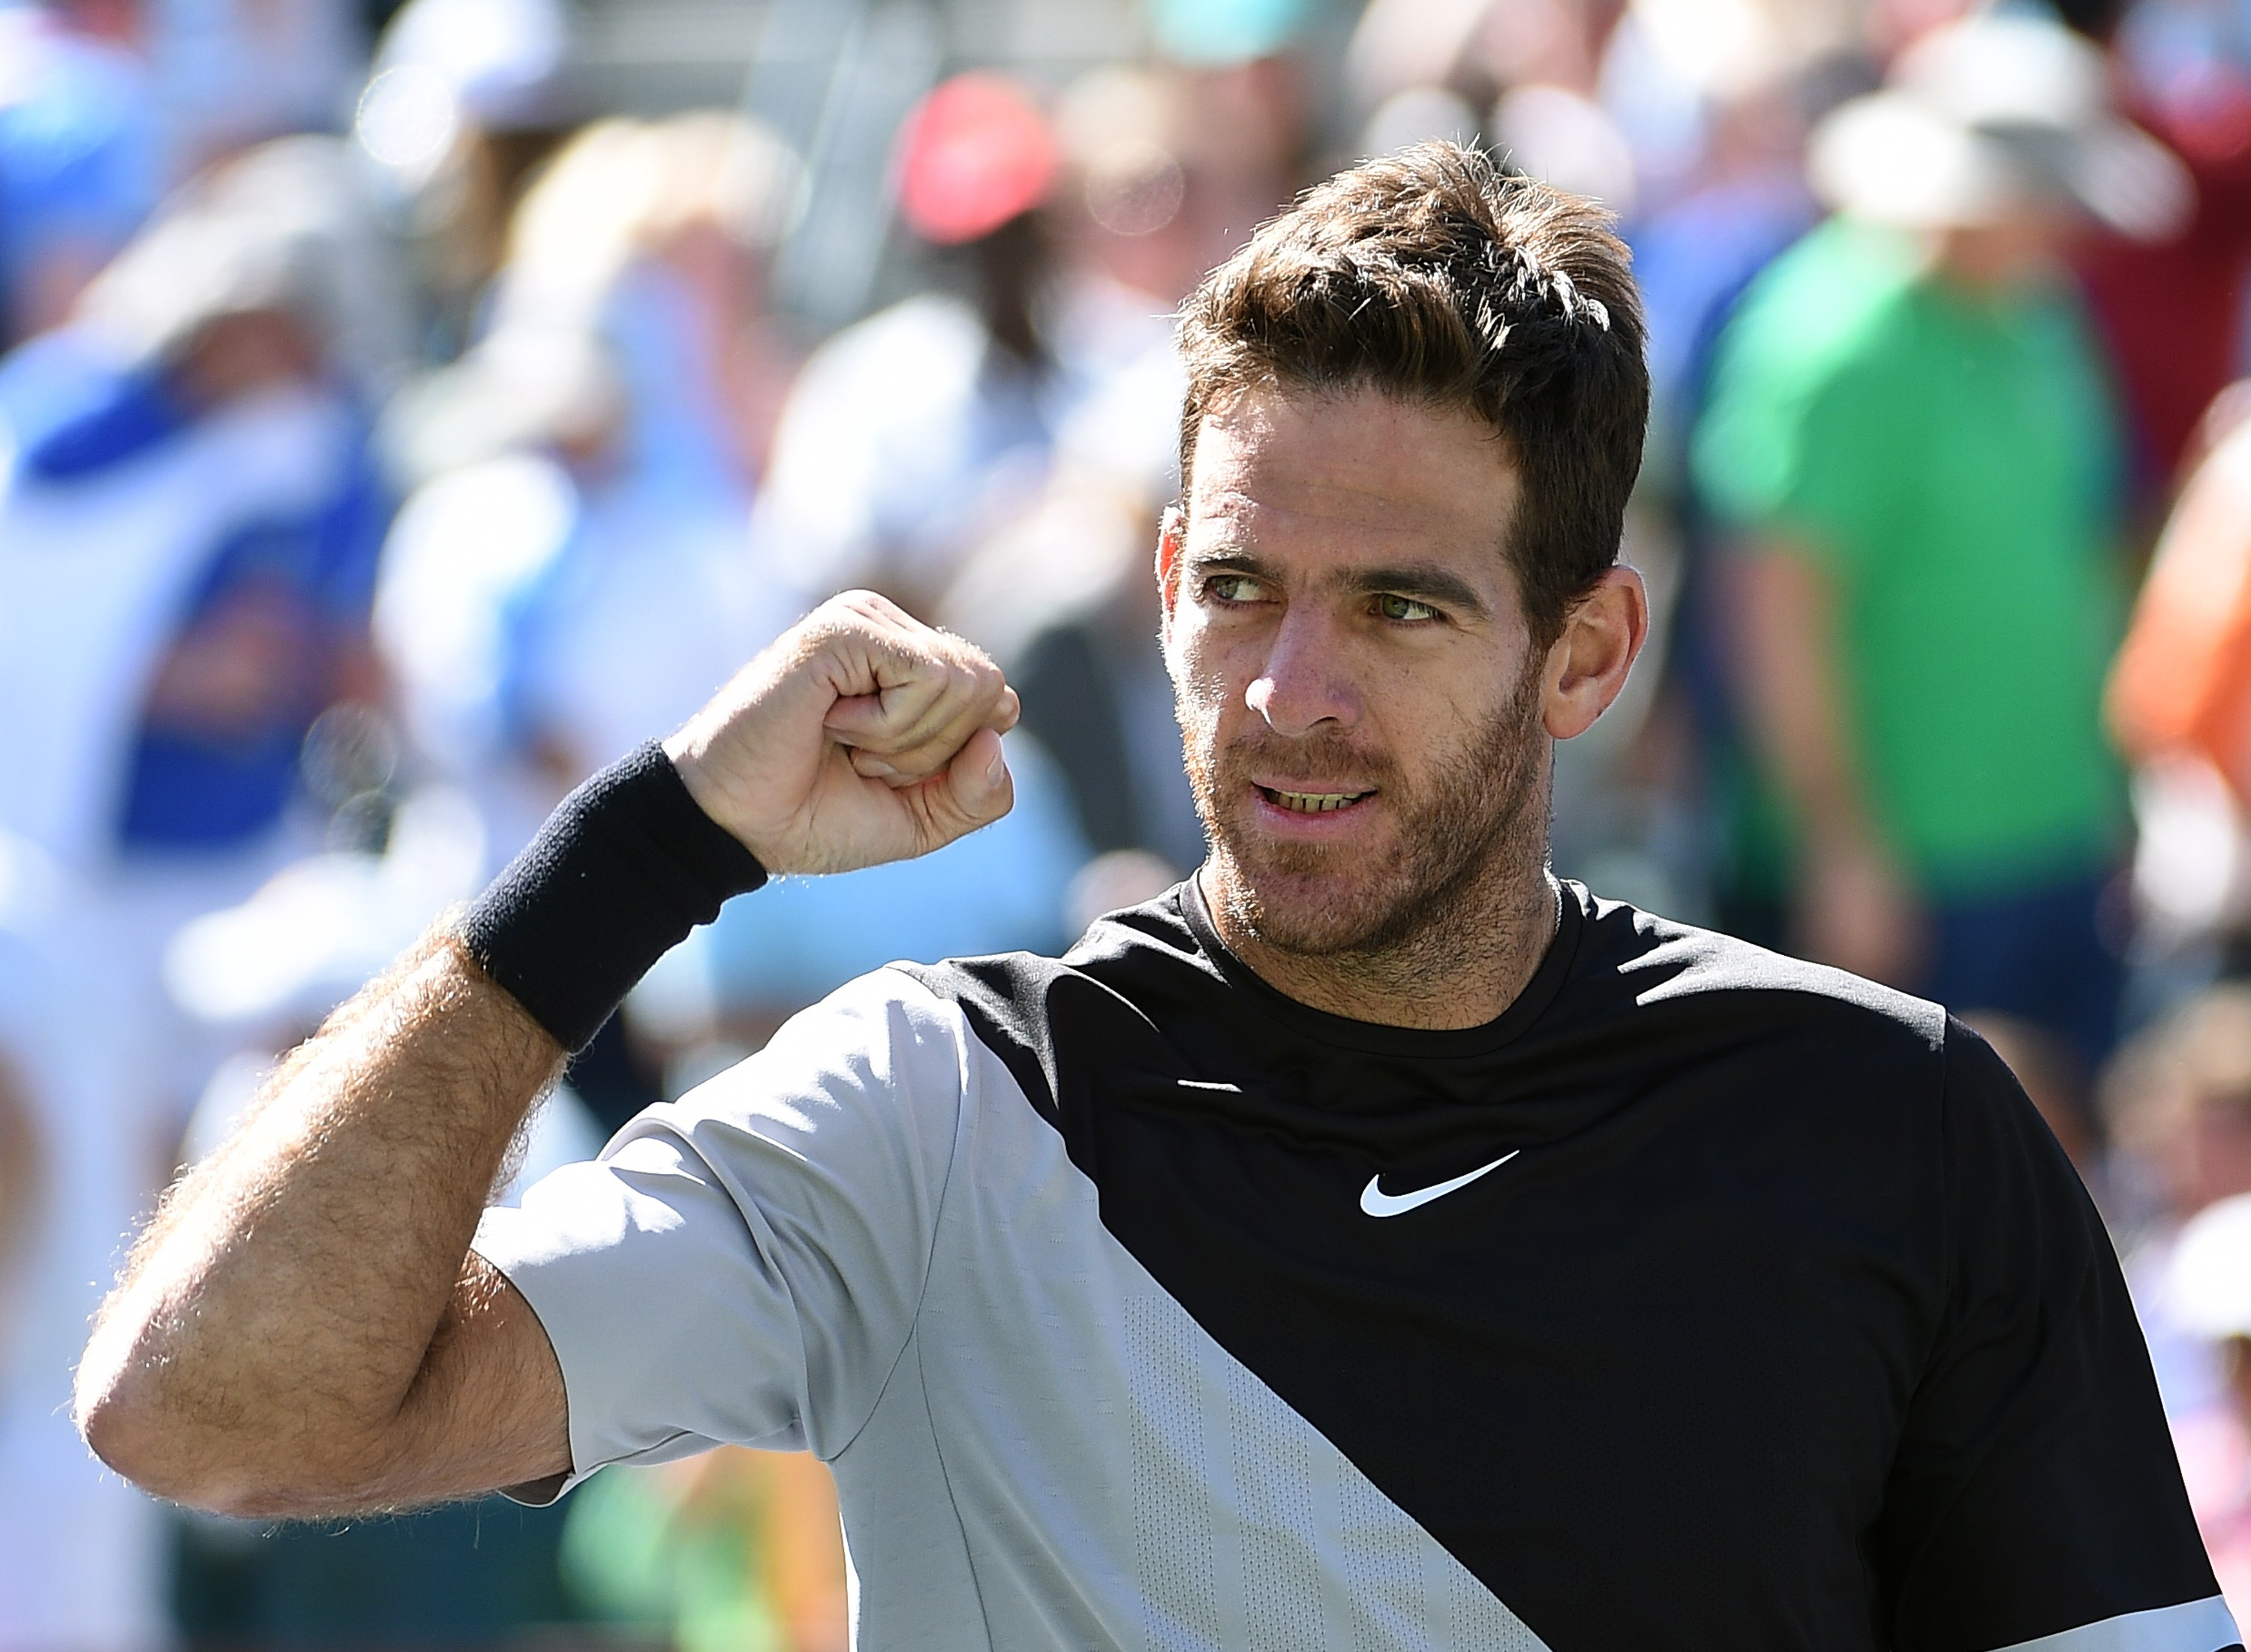 Tennis - ATP - Indian Wells : Federer n'est plus invincible, la faute à Del Potro